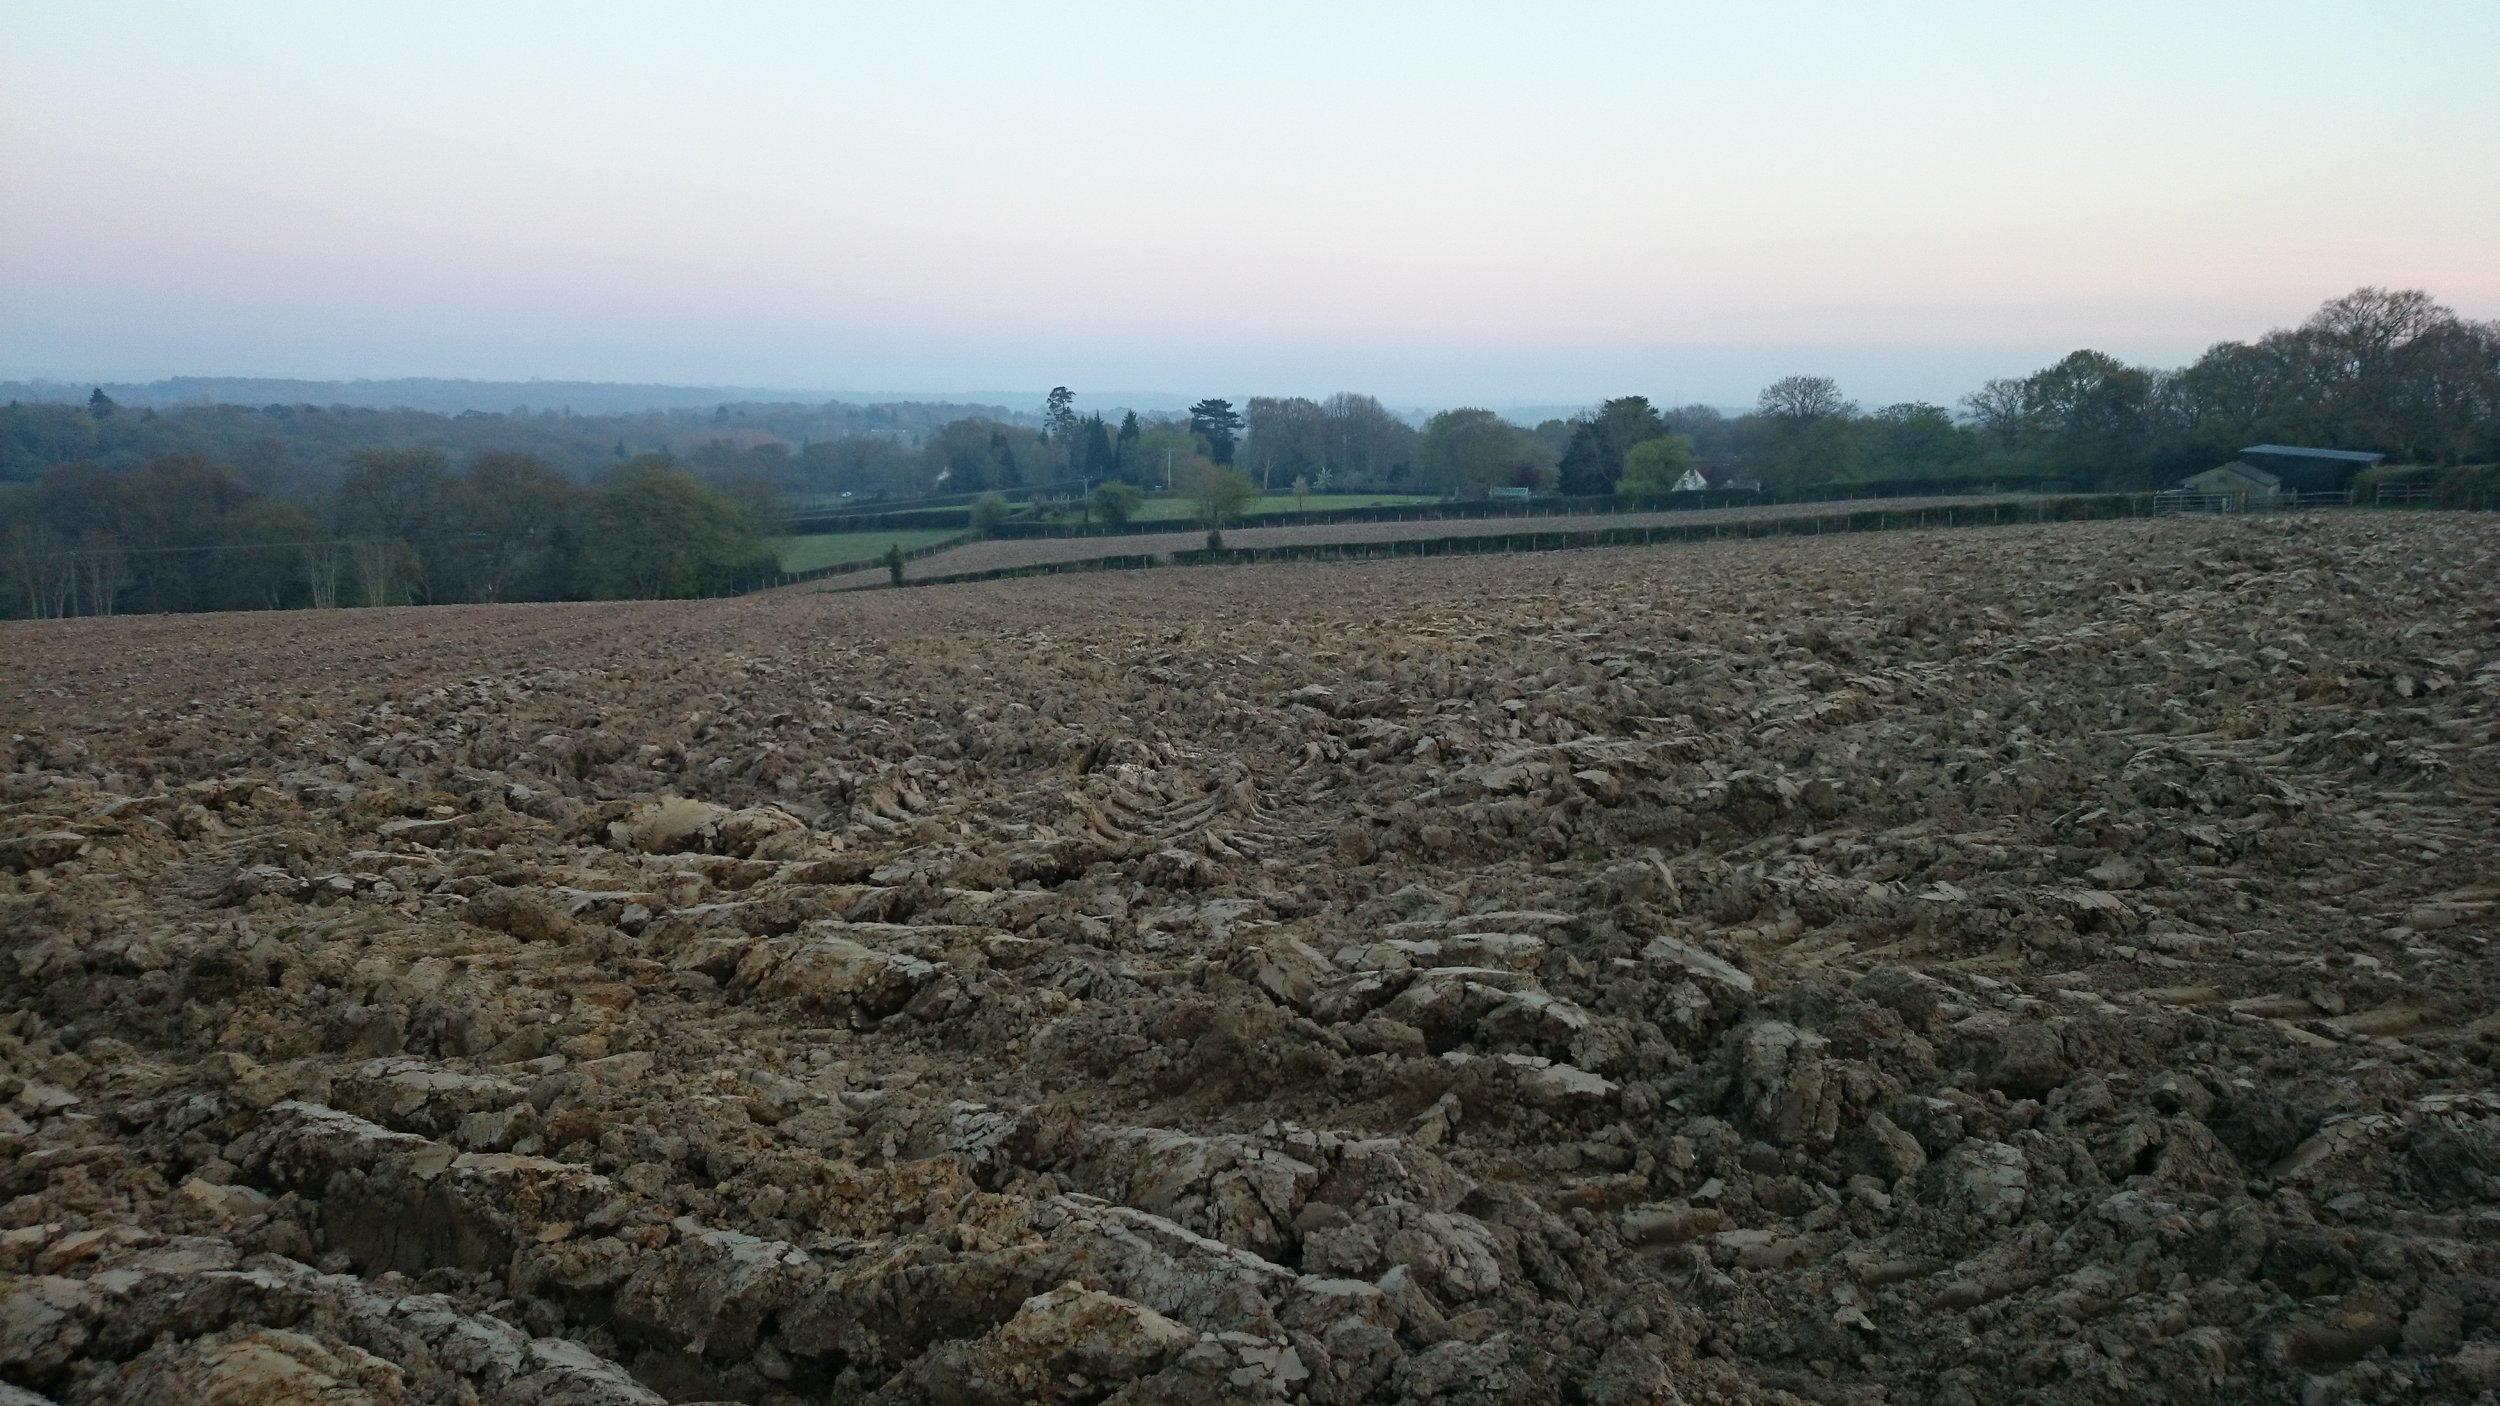 April 2015 - Ploughed for planting